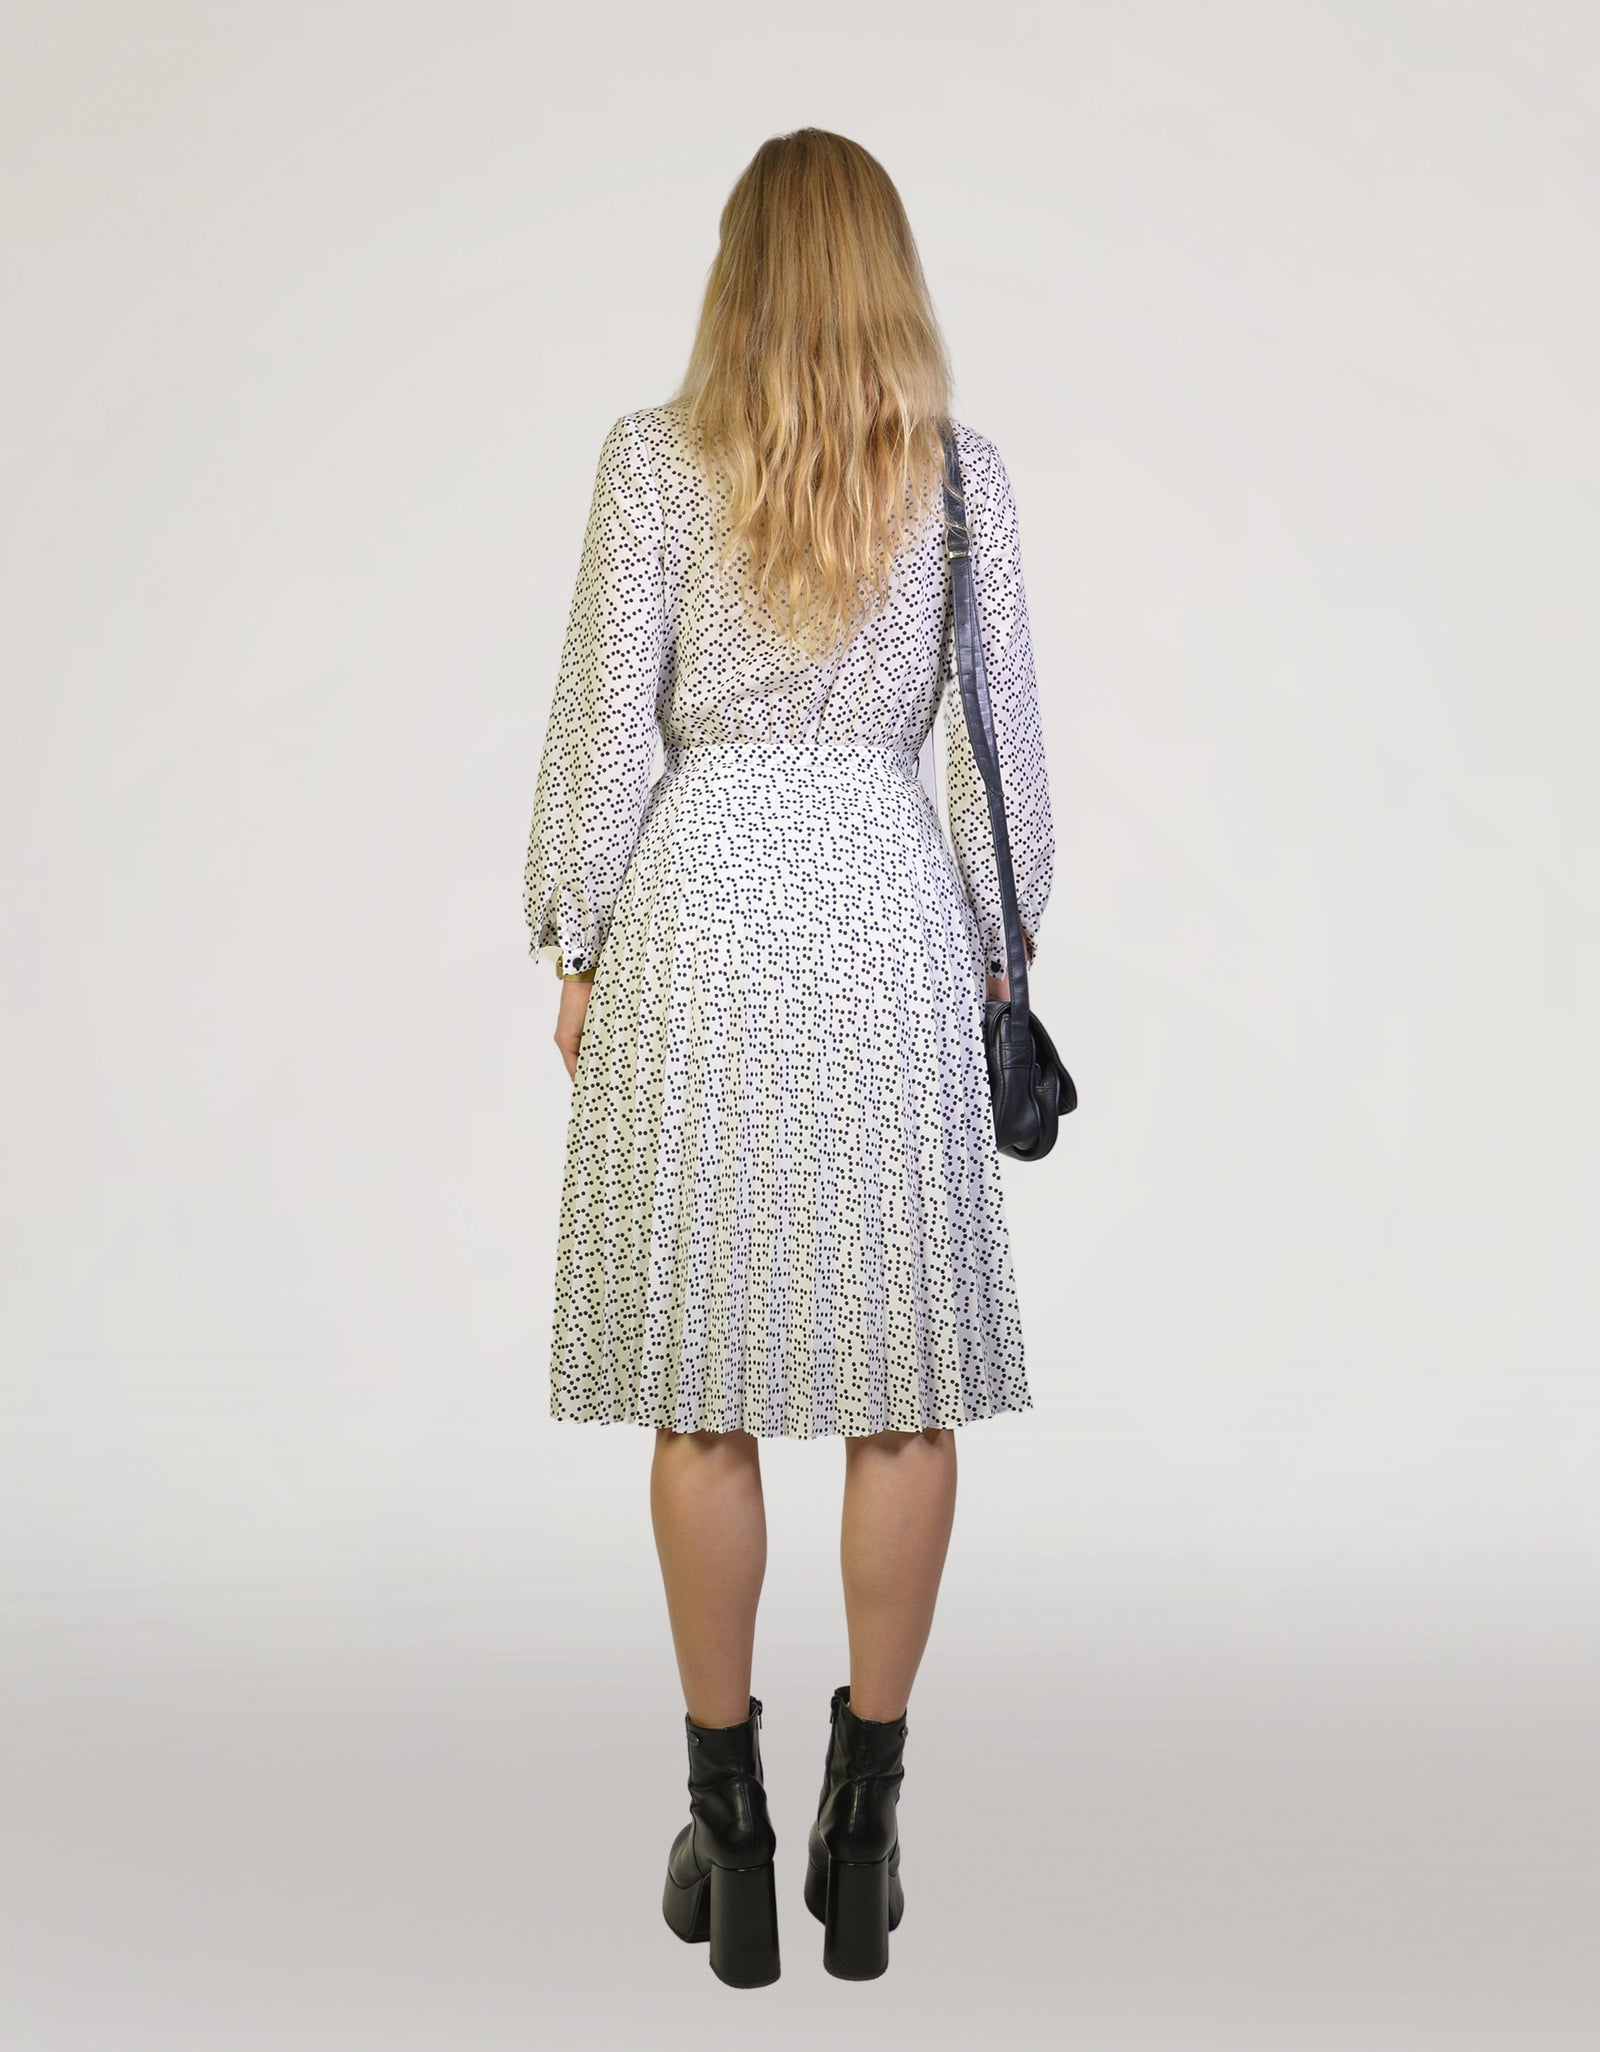 Dotted dress - PICKNWEIGHT - VINTAGE KILO STORE